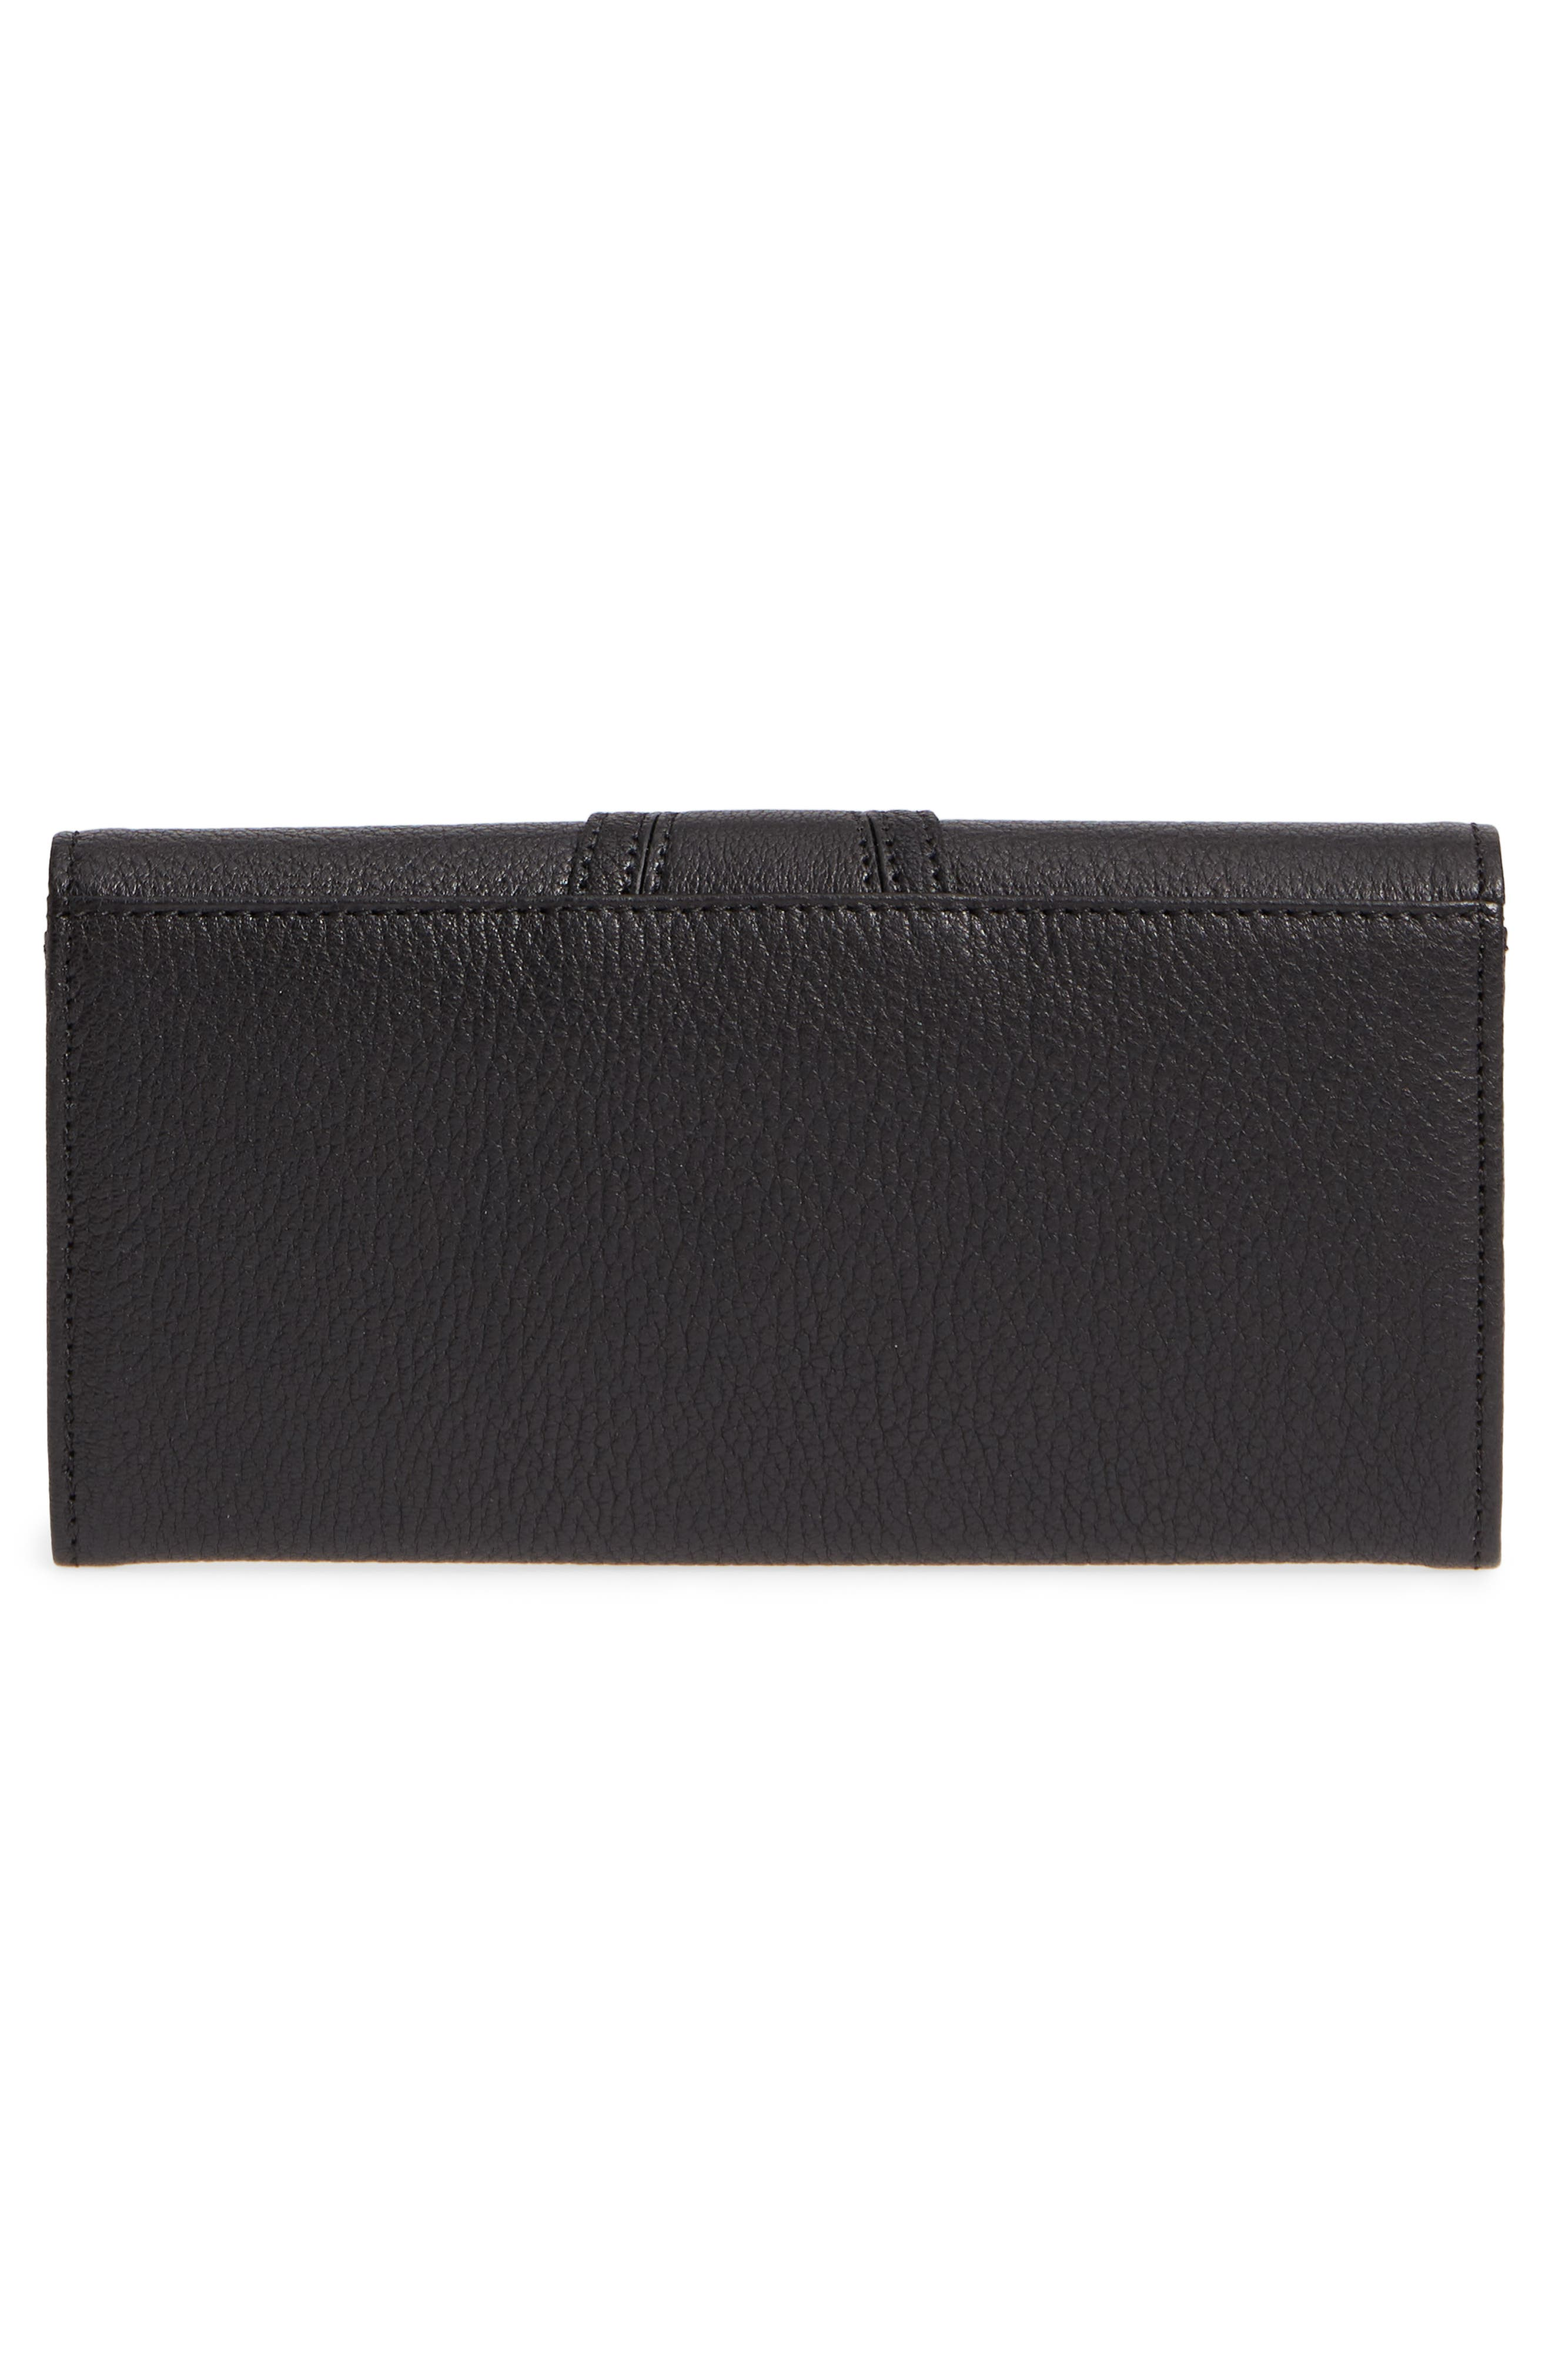 SEE BY CHLOÉ,                             Hana Large Leather Wallet,                             Alternate thumbnail 3, color,                             001